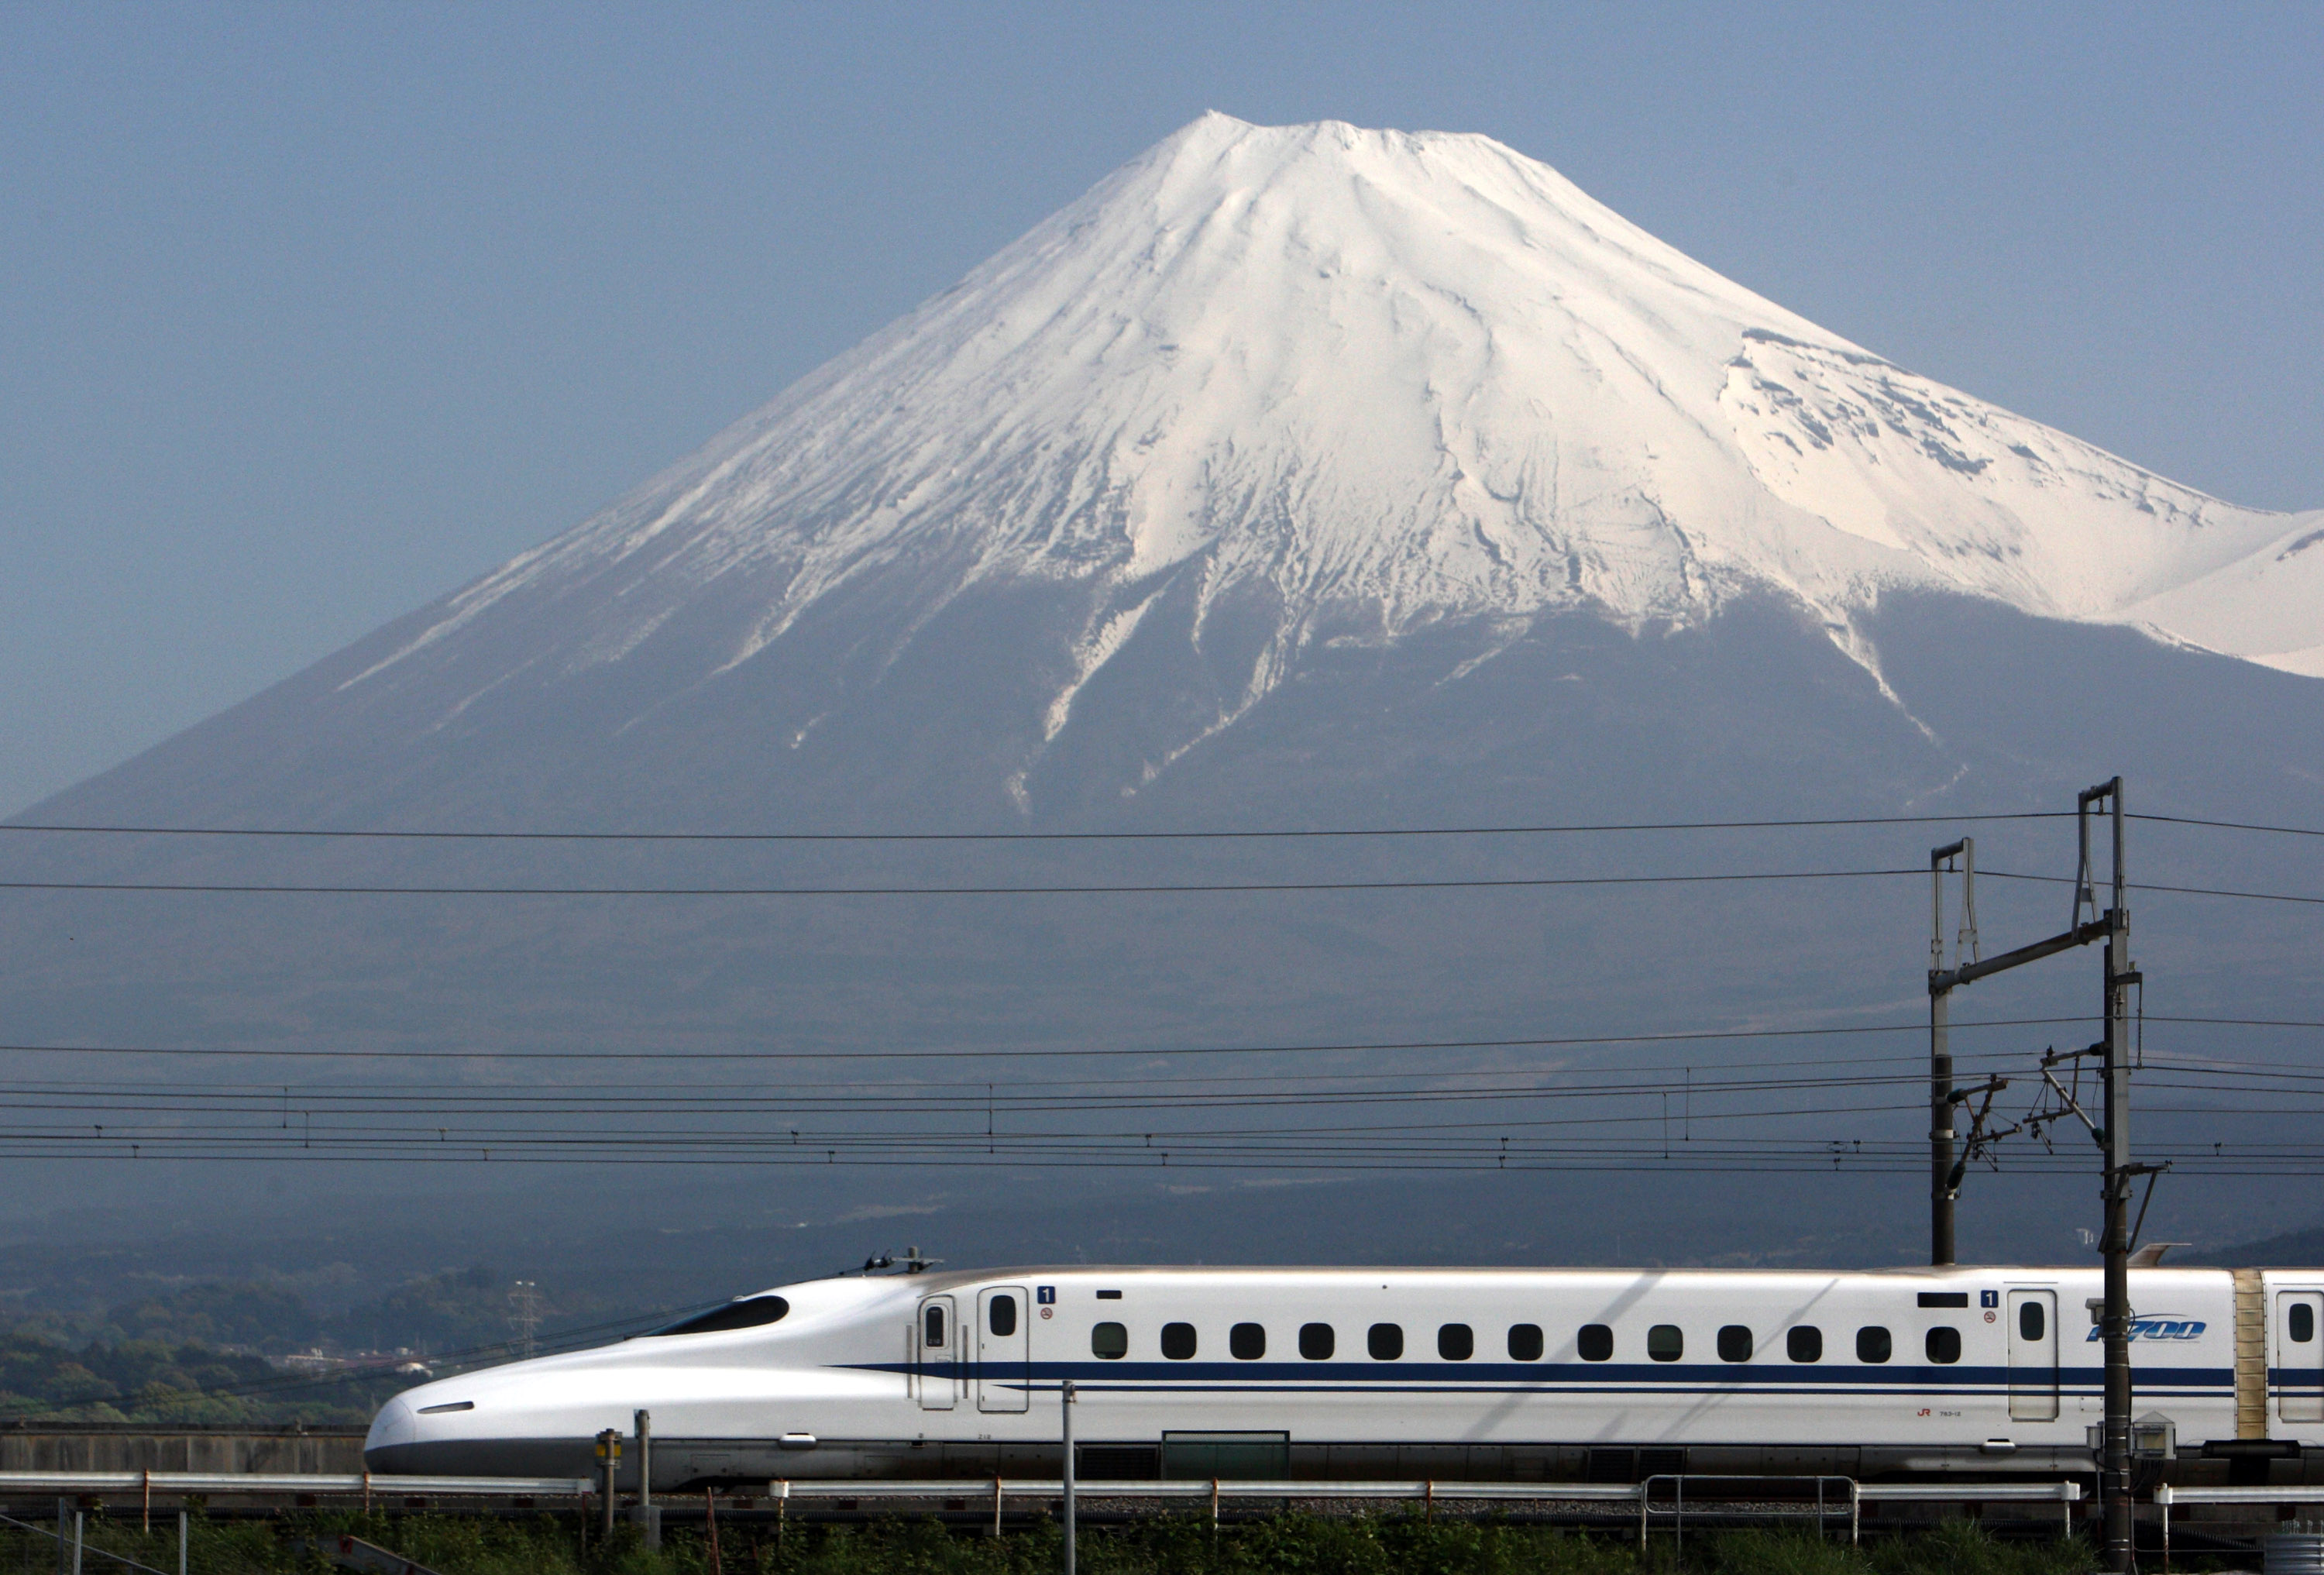 10 Trains That Changed The World